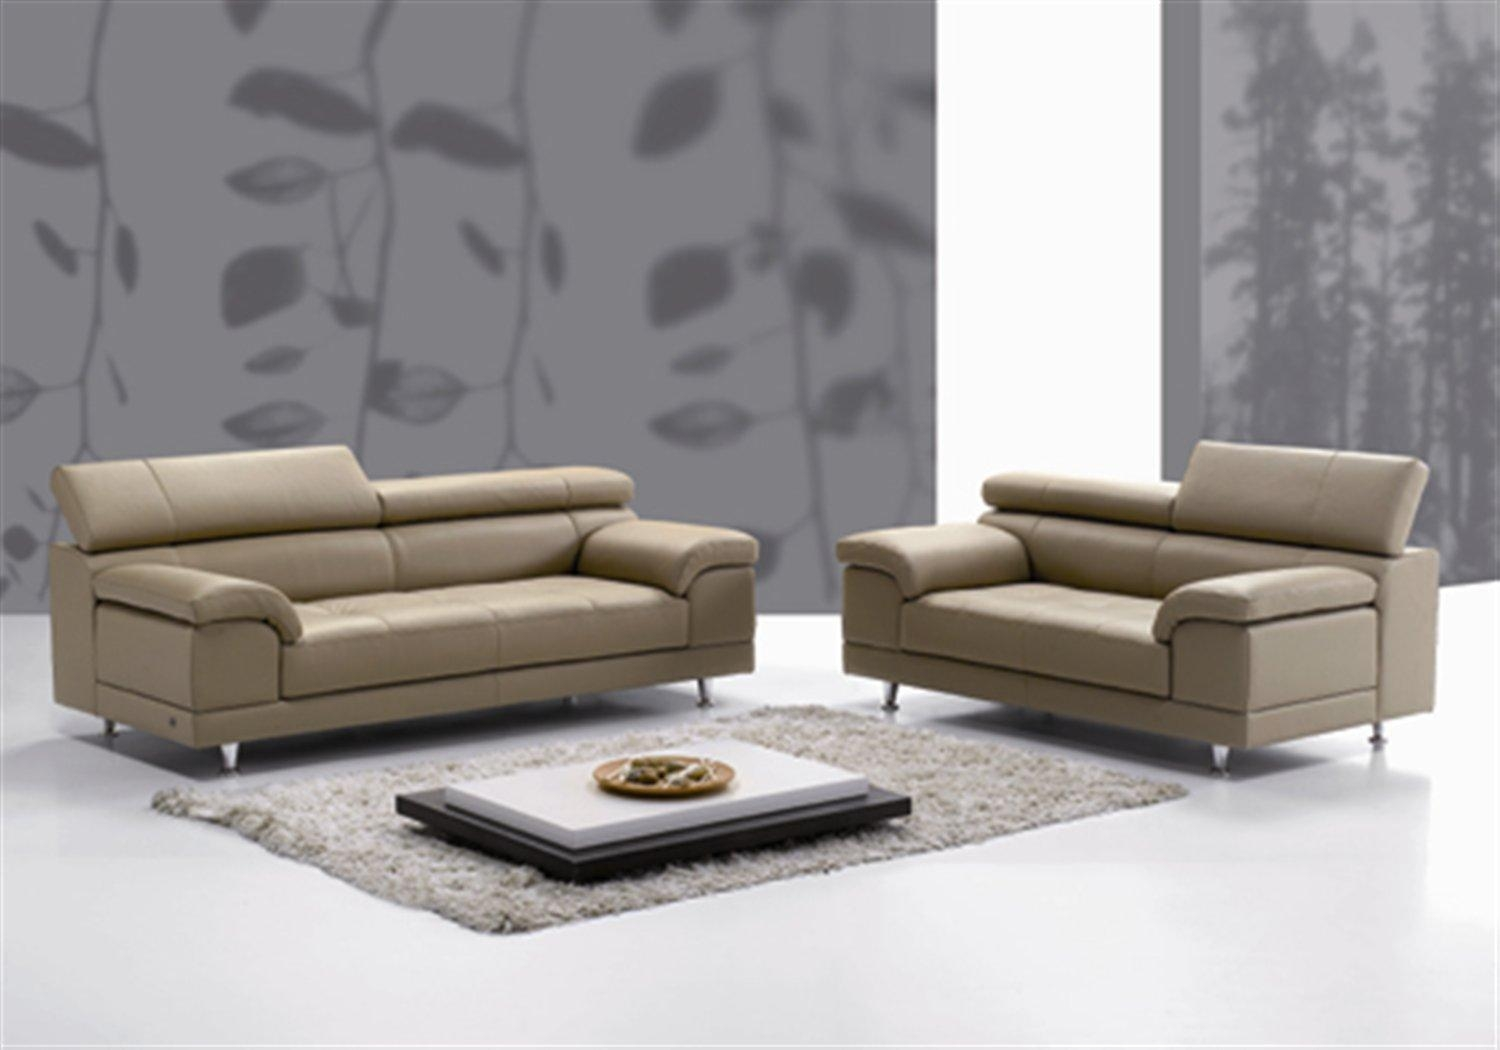 Italian Leather Sofa, Affordable And Quality From Piquattro With Italian Leather Sofas (Image 8 of 20)